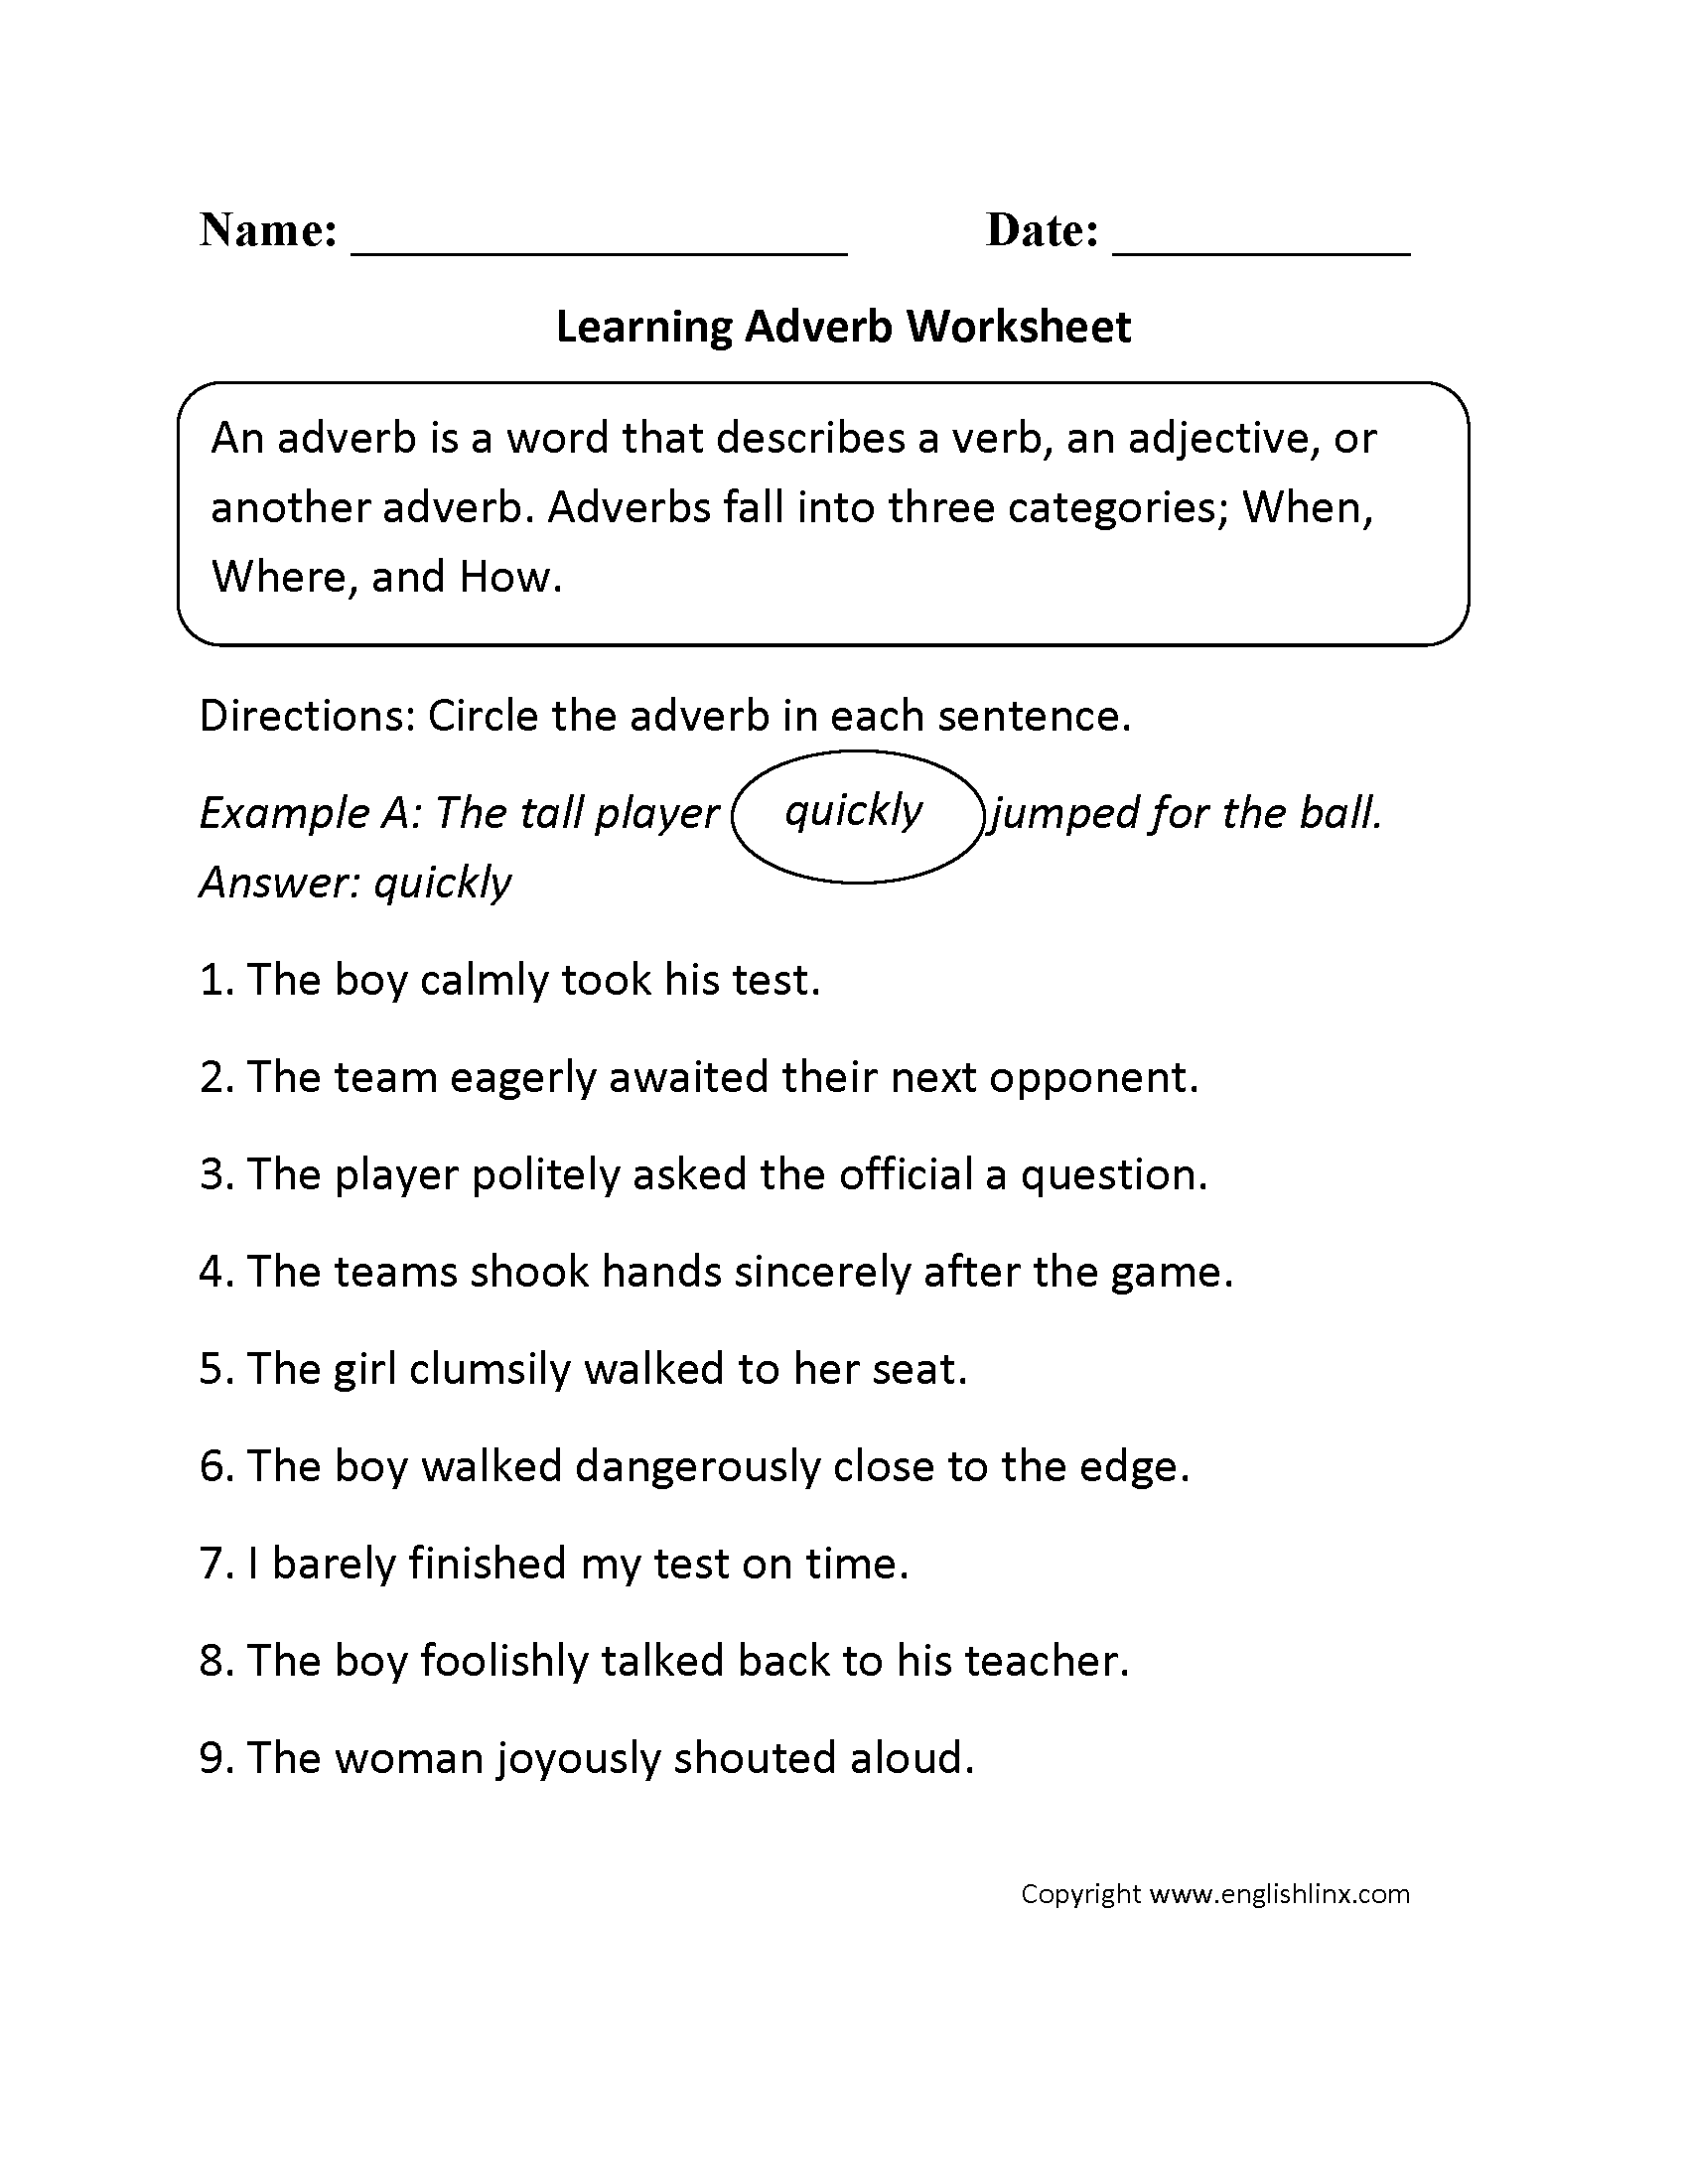 Worksheets Parts Of Speech Worksheet grammar worksheets parts of speech adverb worksheets